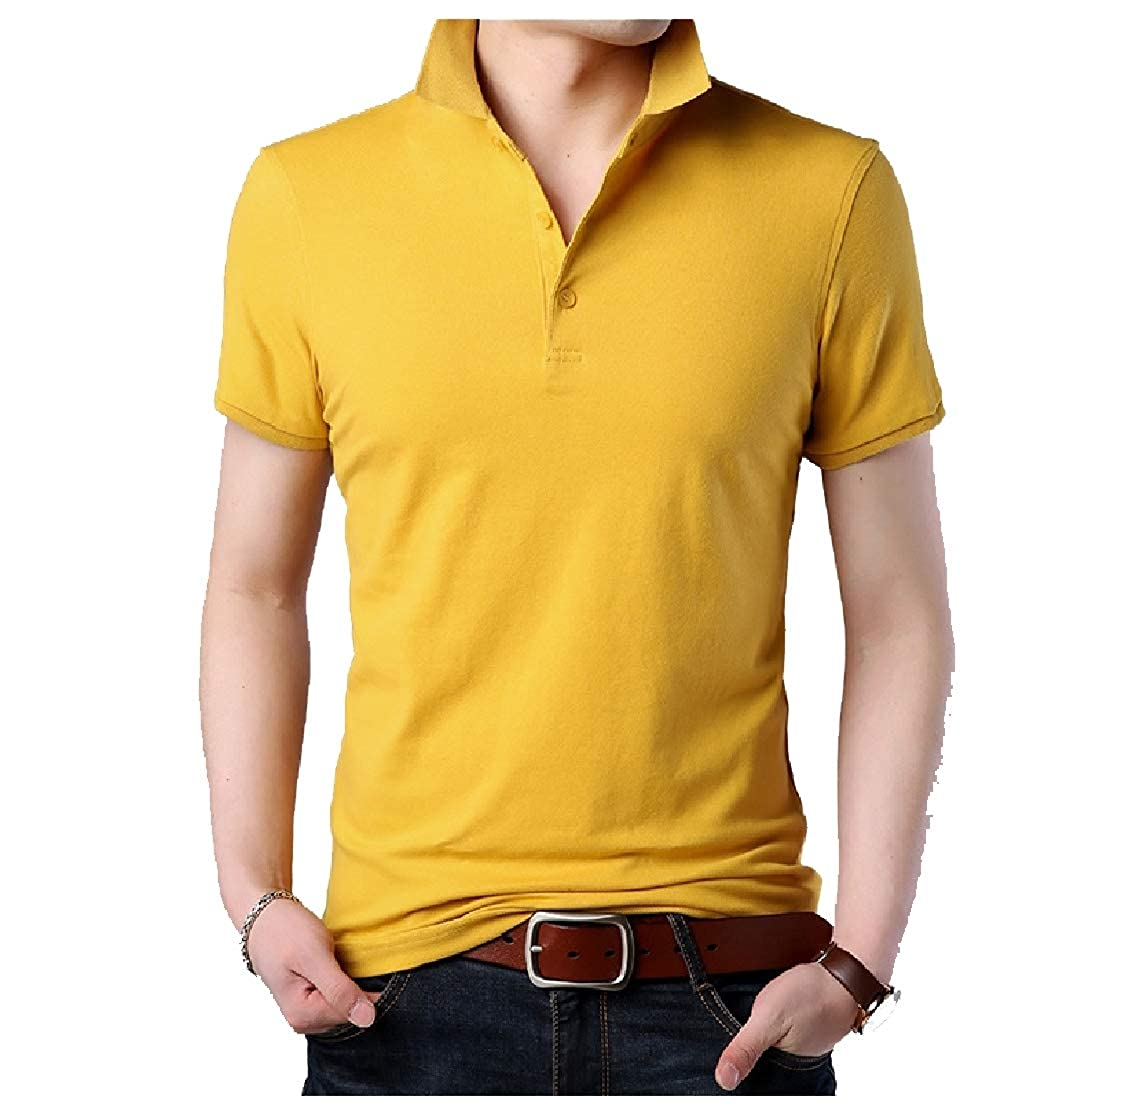 Coolred-Men Polo Pure Color Fitted Leisure Cotton Short-Sleeve Tees Top